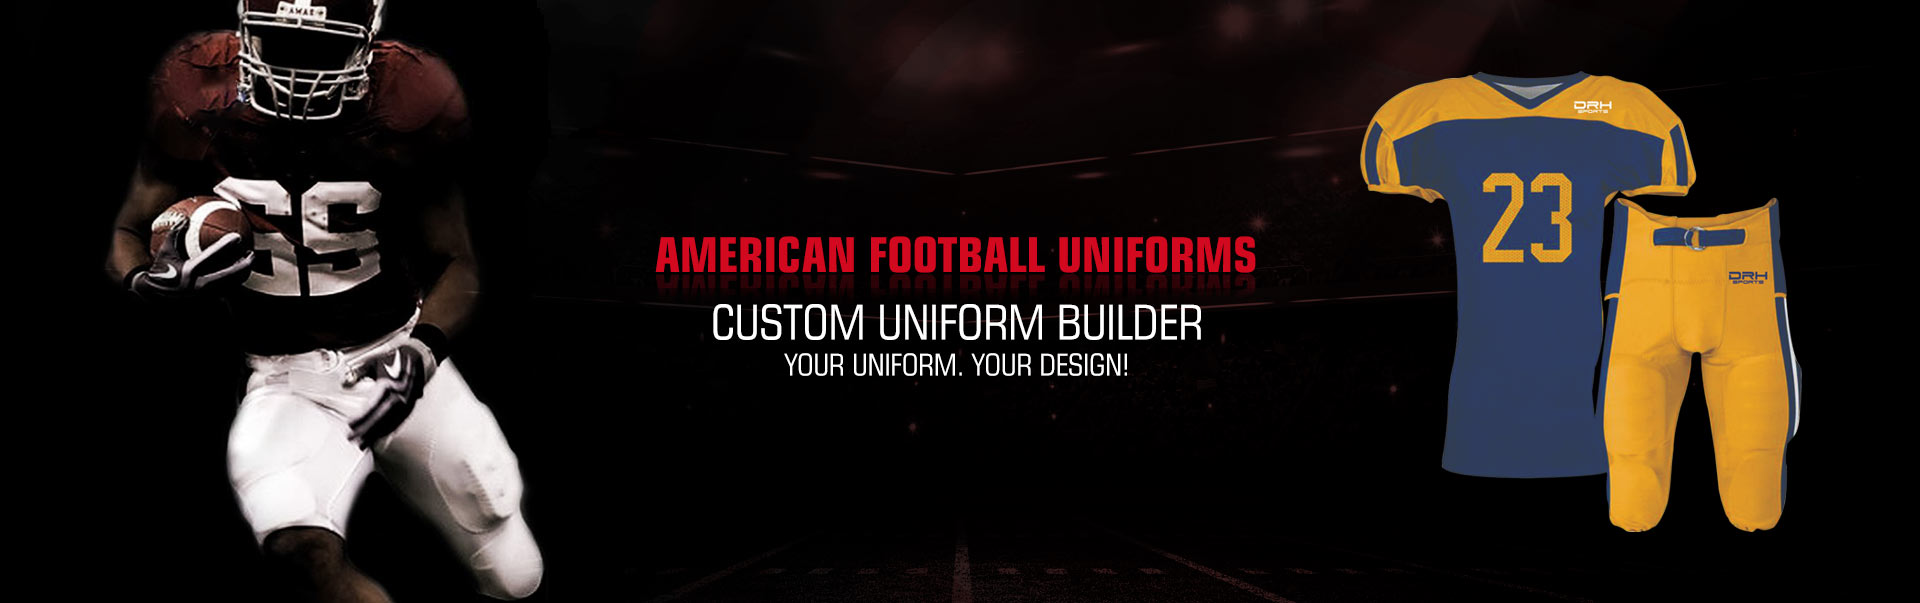 American Football Uniform Wholesaler, Suppliers in Nice